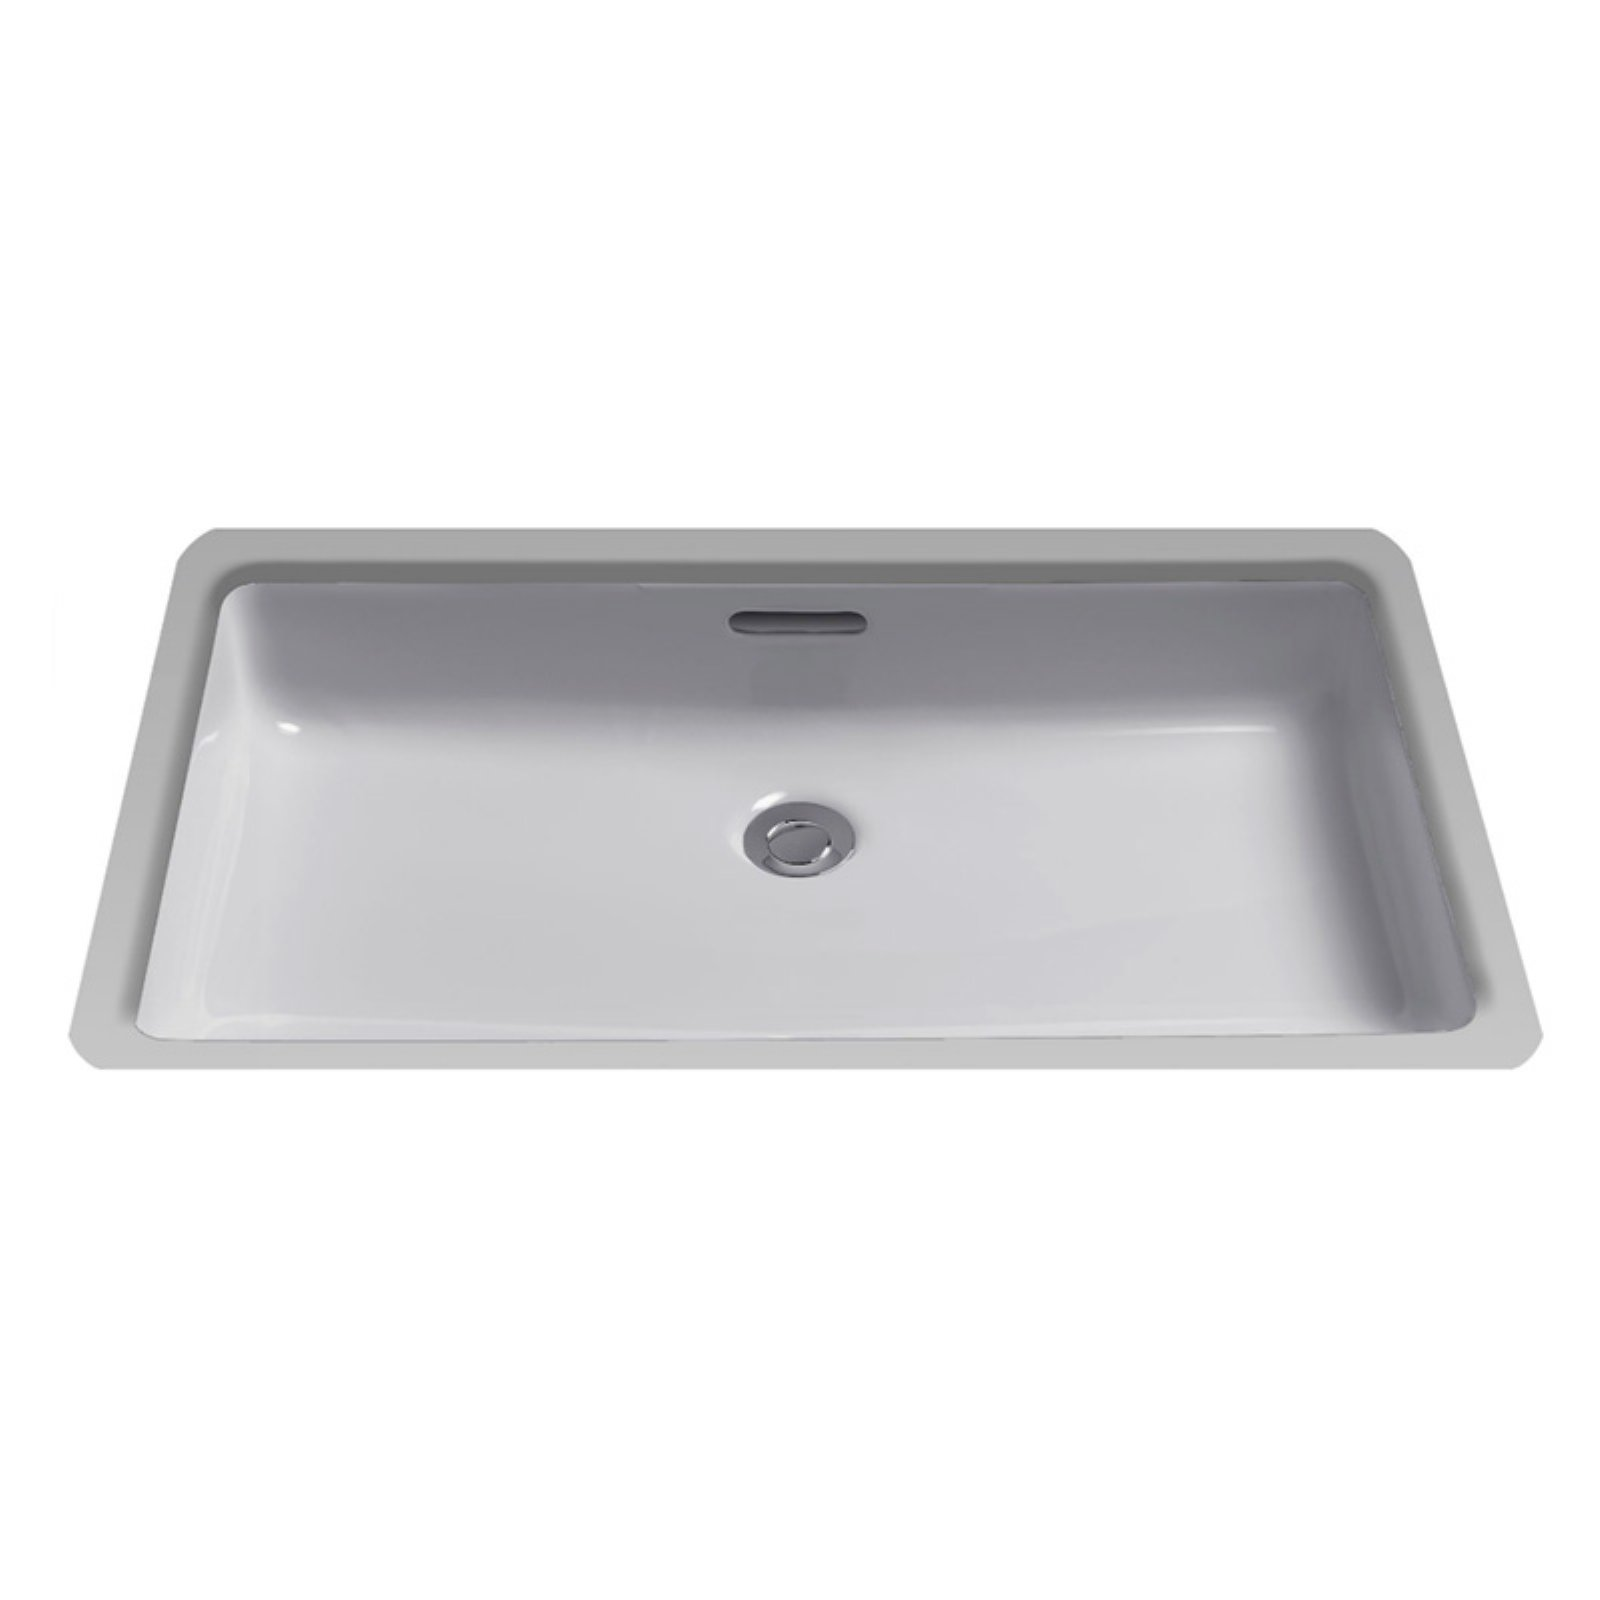 Toto Lt191g Undermount Bathroom Sink Colonial White Rectangular Sink Bathroom Undermount Bathroom Sink Bathroom Sink